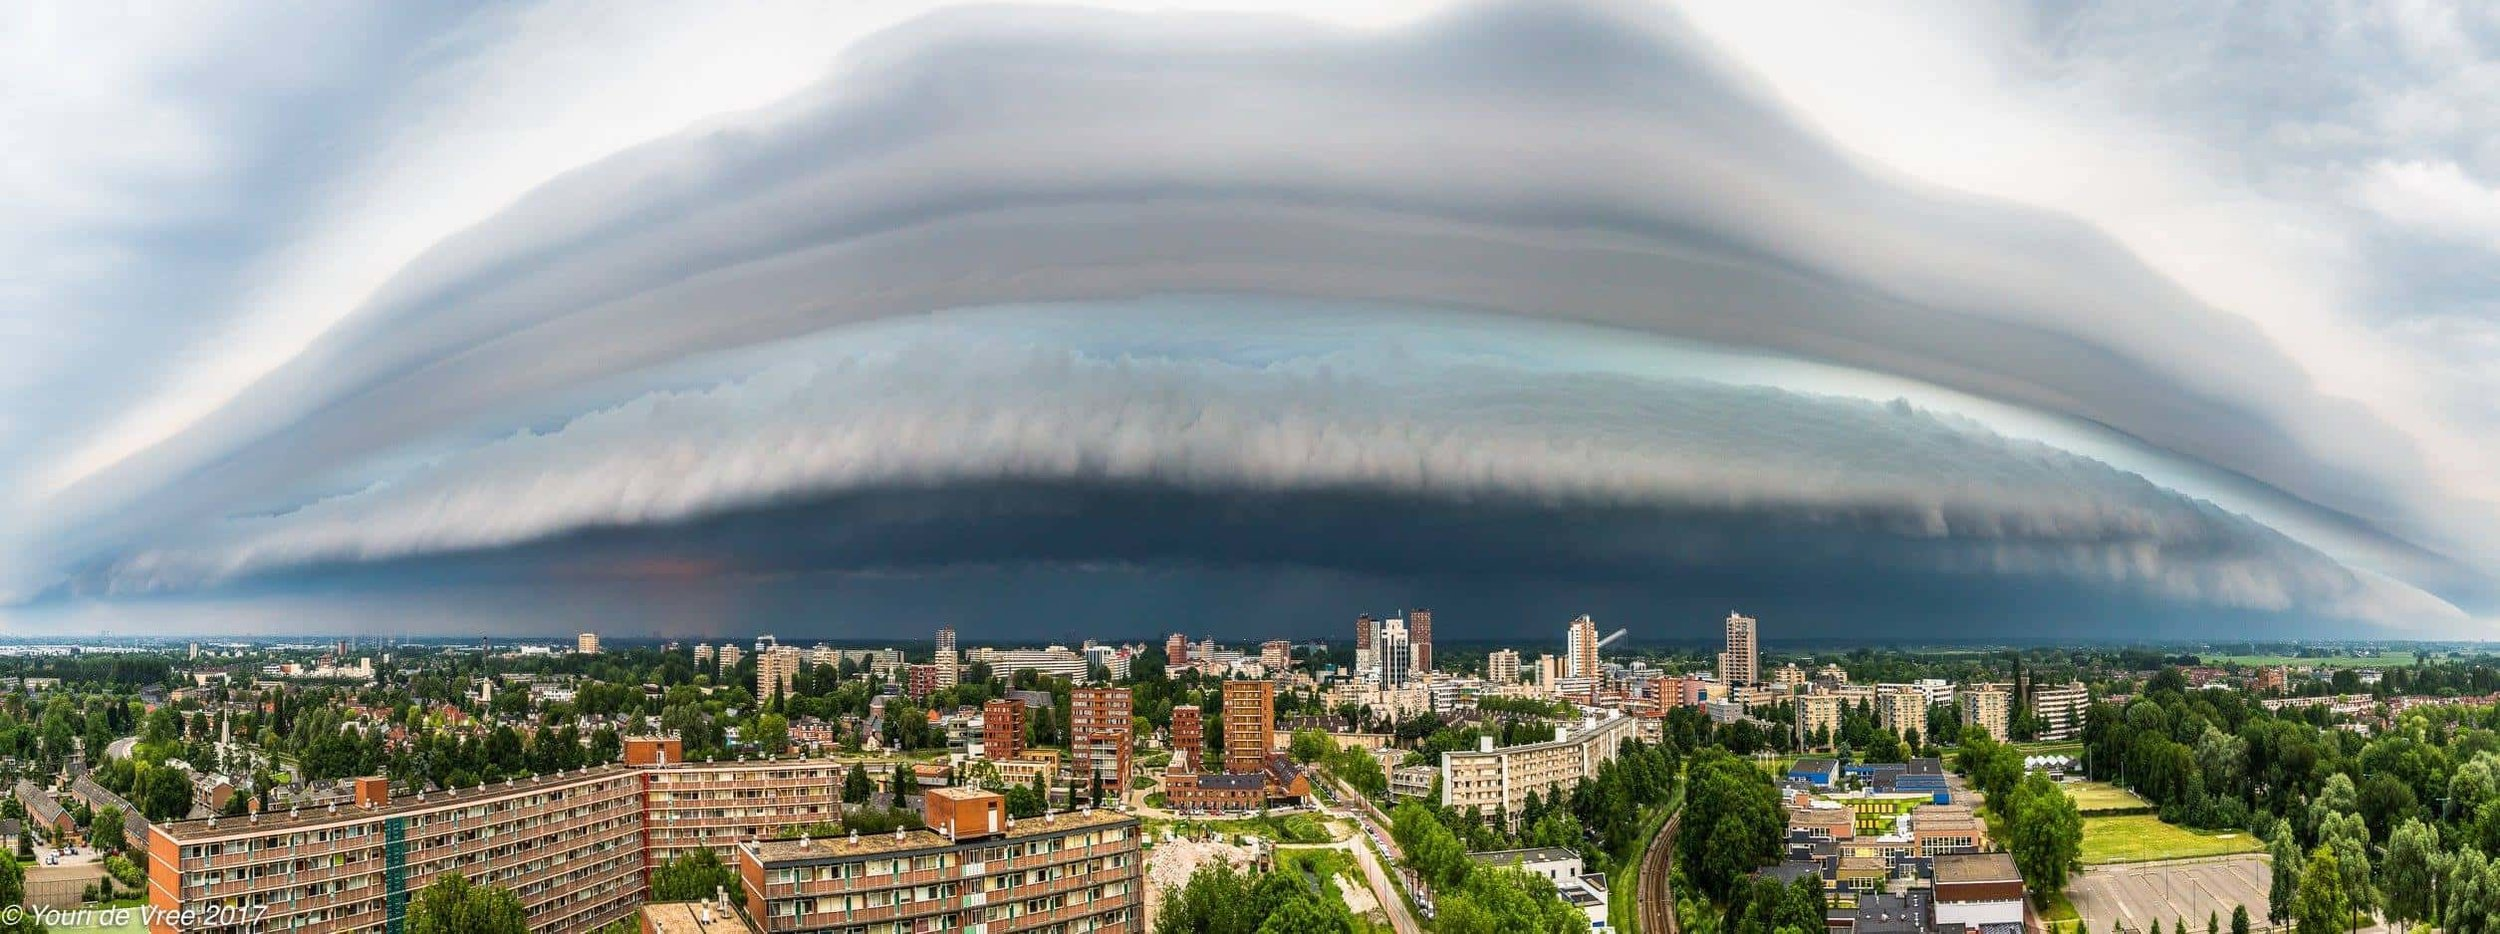 Incoming shelfcloud above Zoetermeer, the Netherlands. May 29th 2017